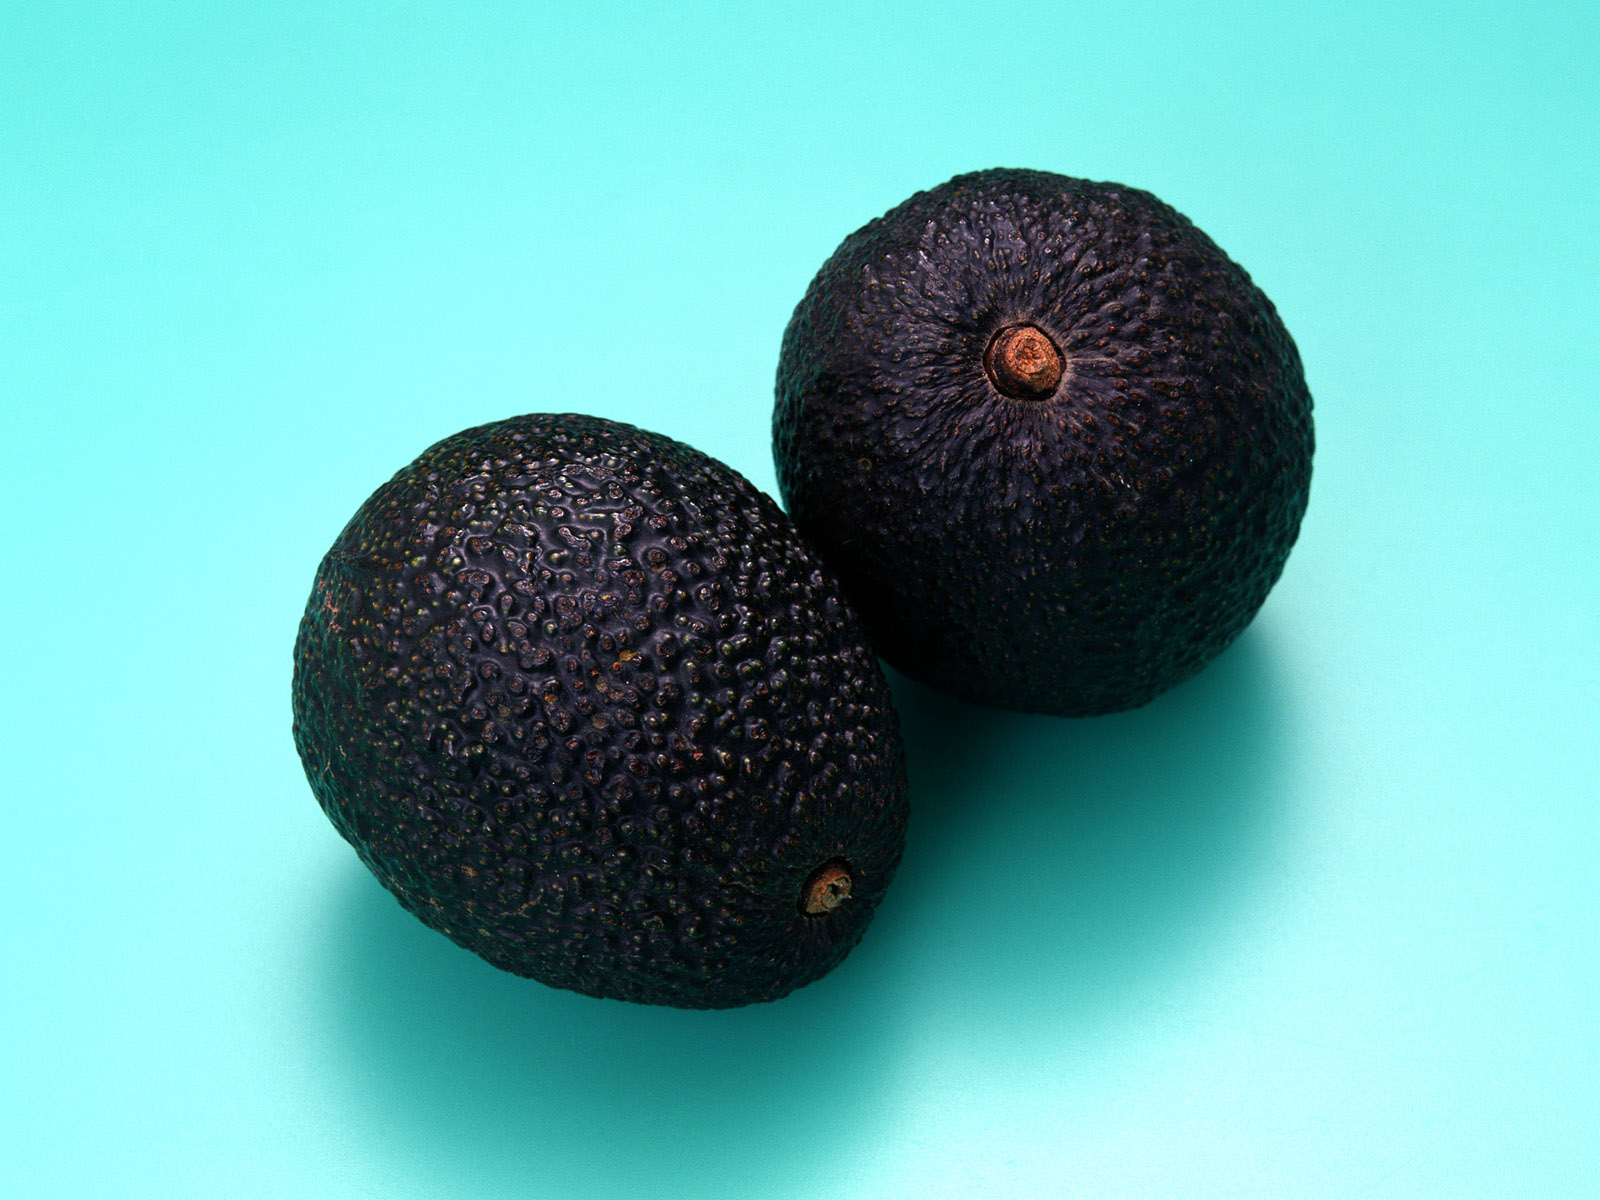 Black fruits wallpapers and images   wallpapers pictures photos 1600x1200